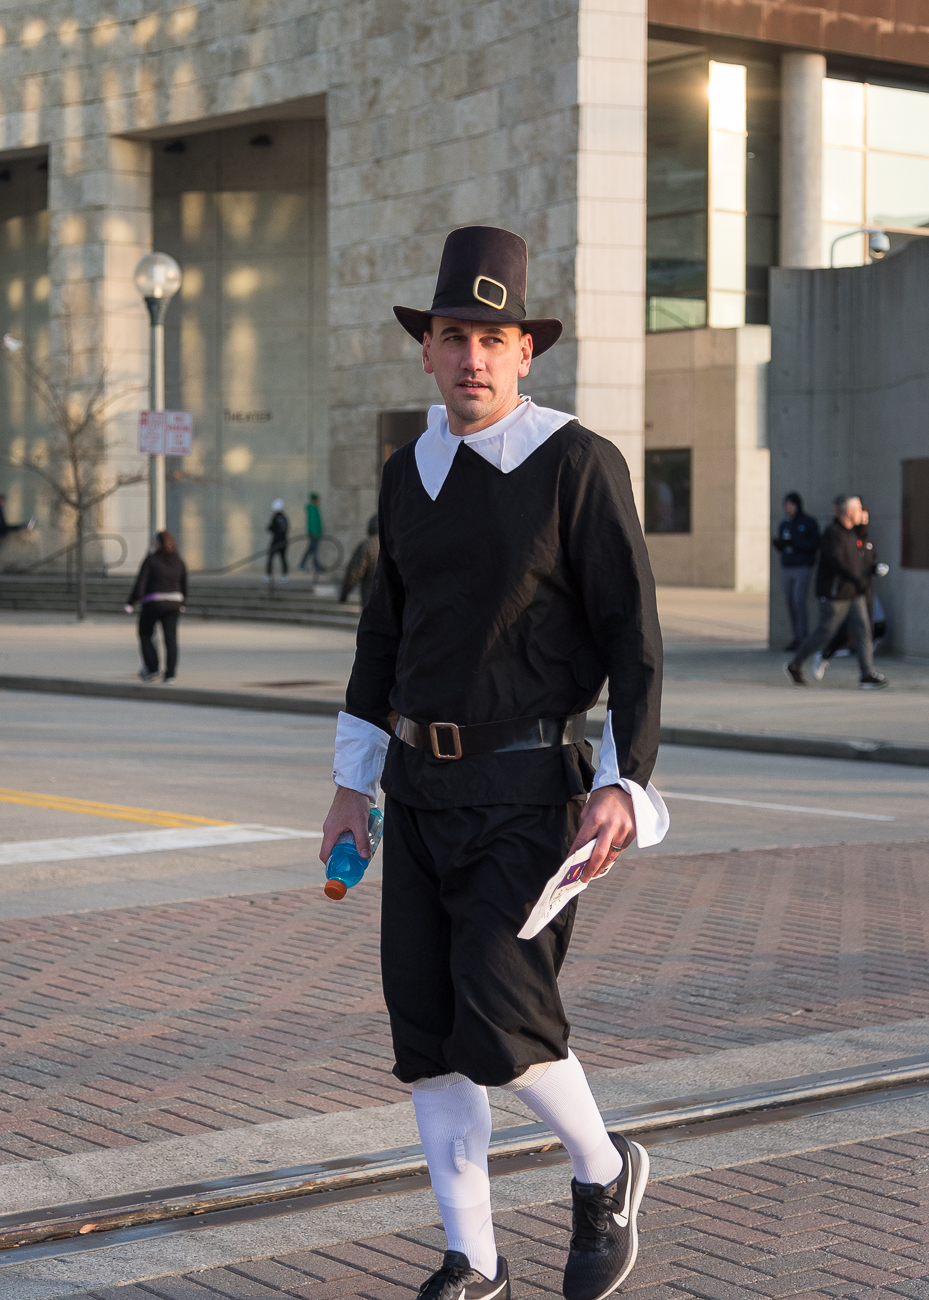 A pilgrim participated in the 109th Annual Western and Southern Thanksgiving Day 10K Run/Walk was held on Nov. 22, 2018. / Image: Phil Armstrong, Cincinnati Refined // Published: 11.30.18